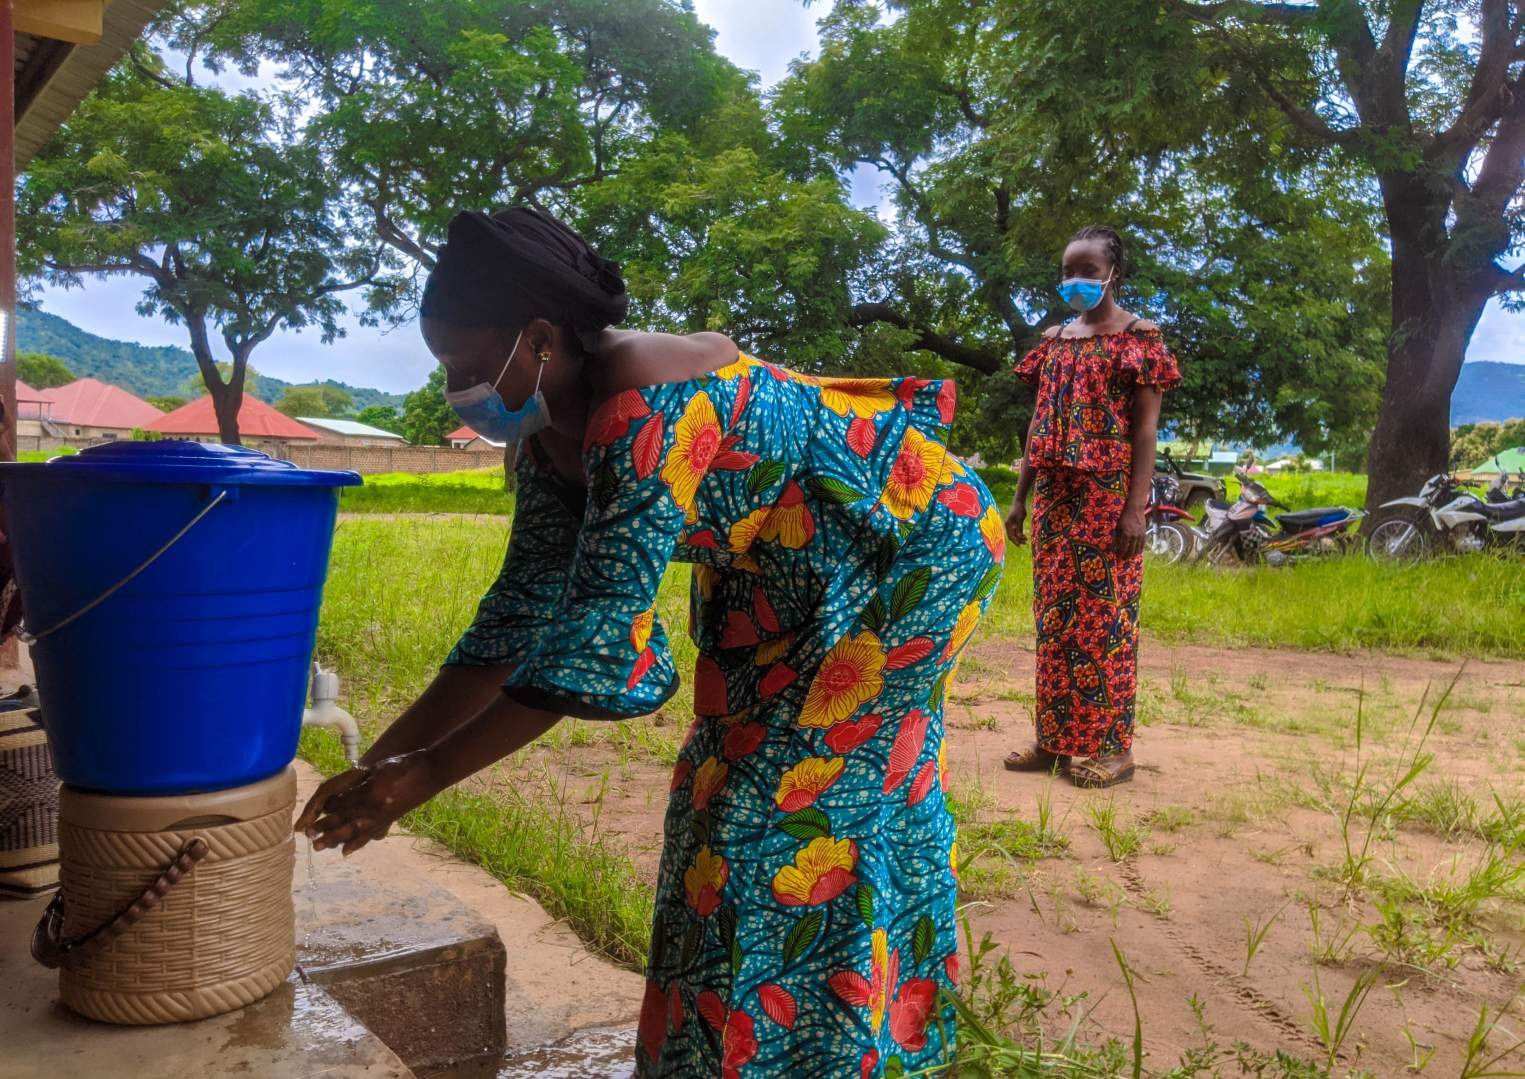 A woman washes her hands using a spout from a small bucket of water.